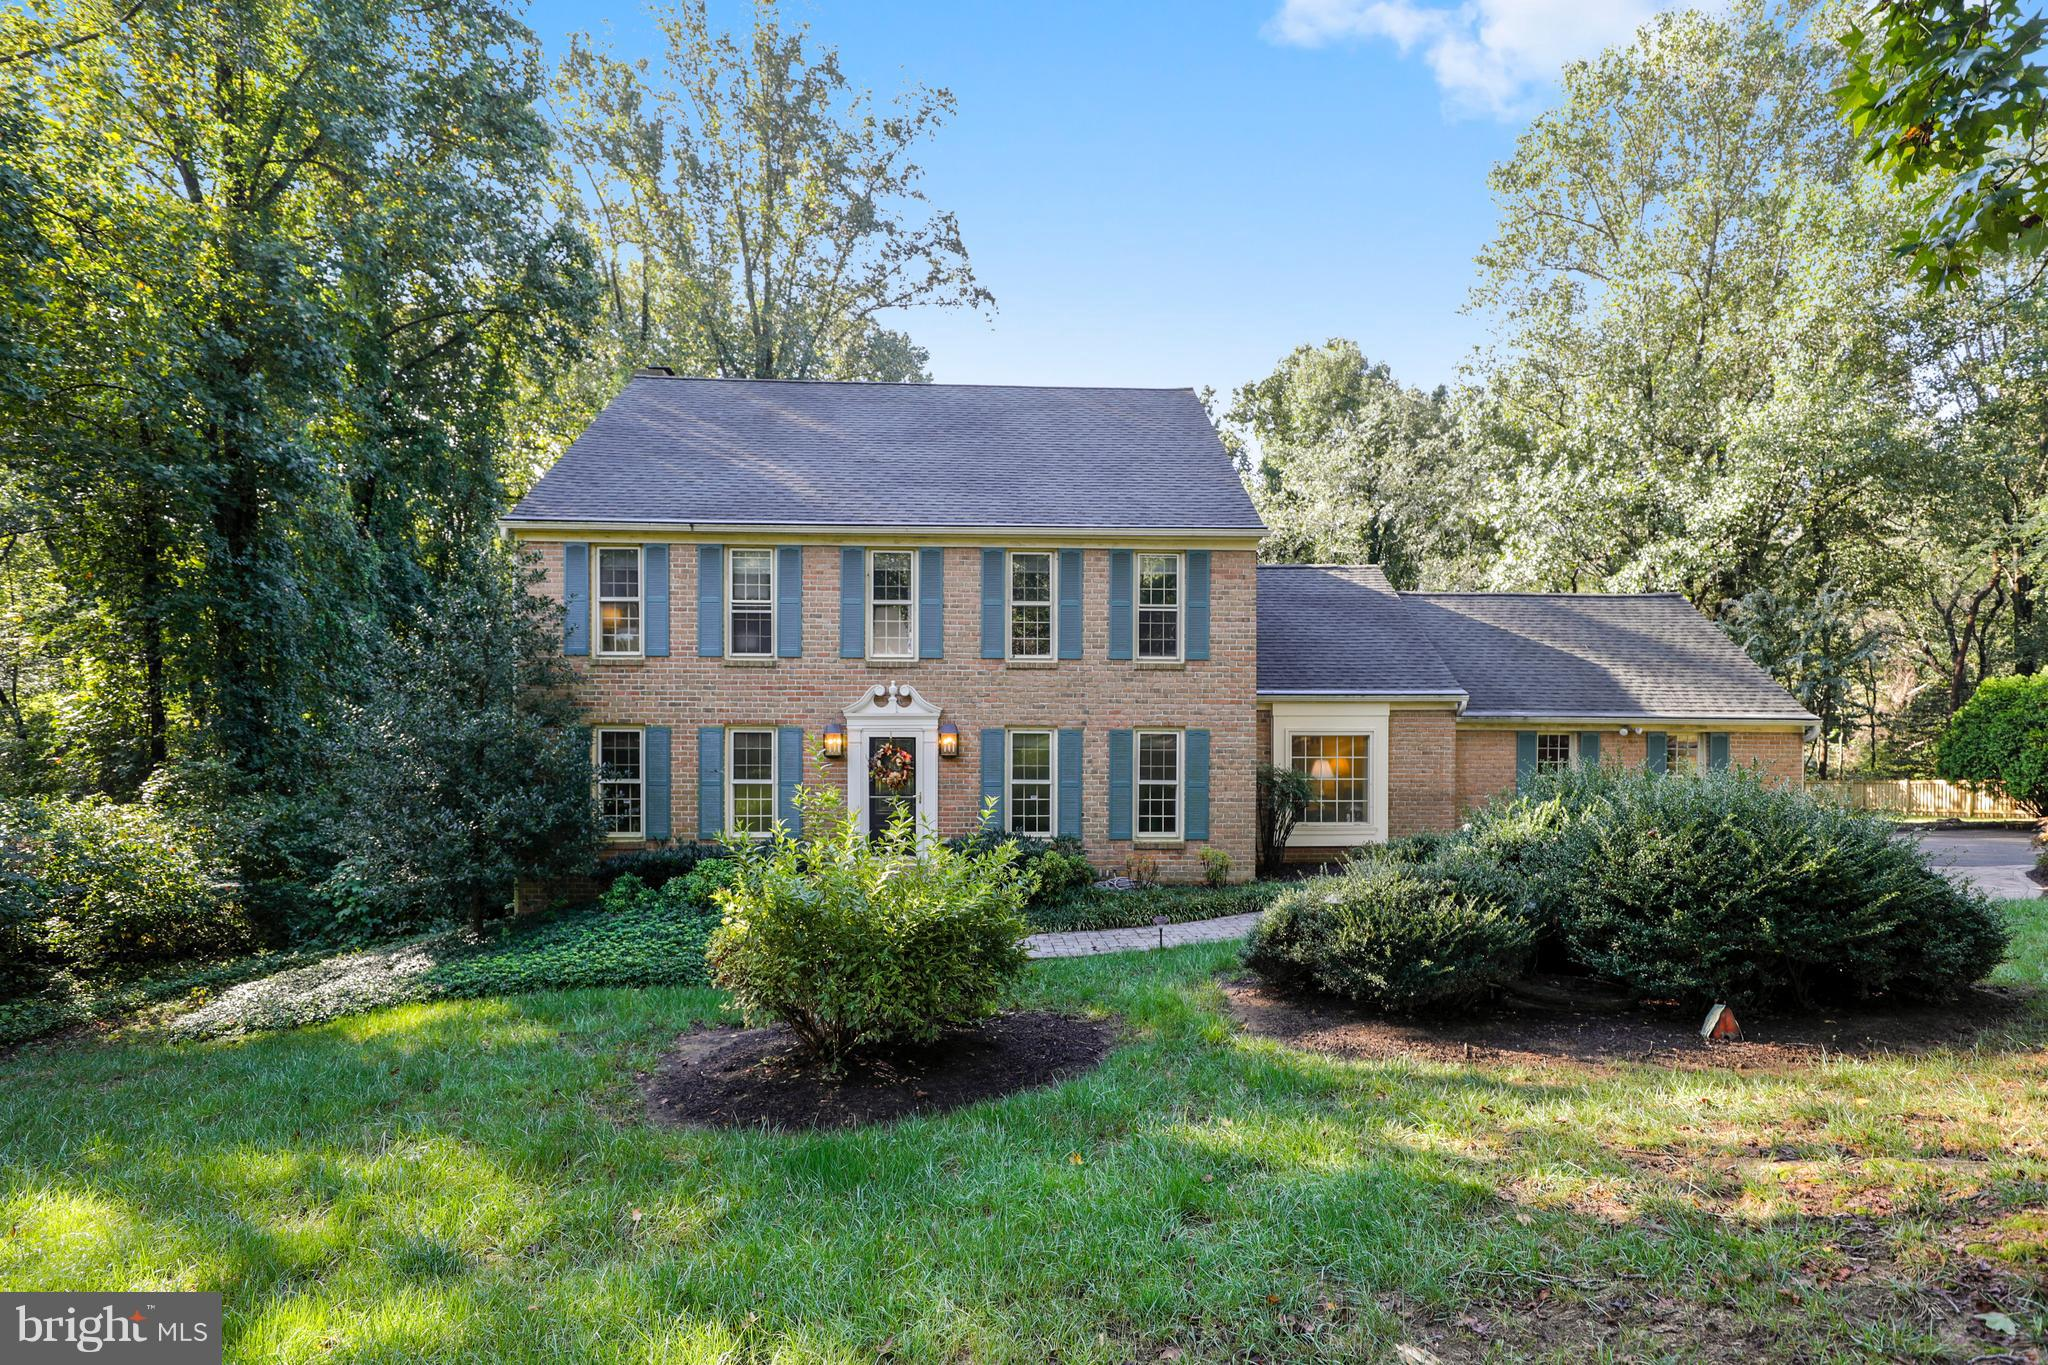 1112 BELLEVISTA COURT, SEVERNA PARK, MD 21146